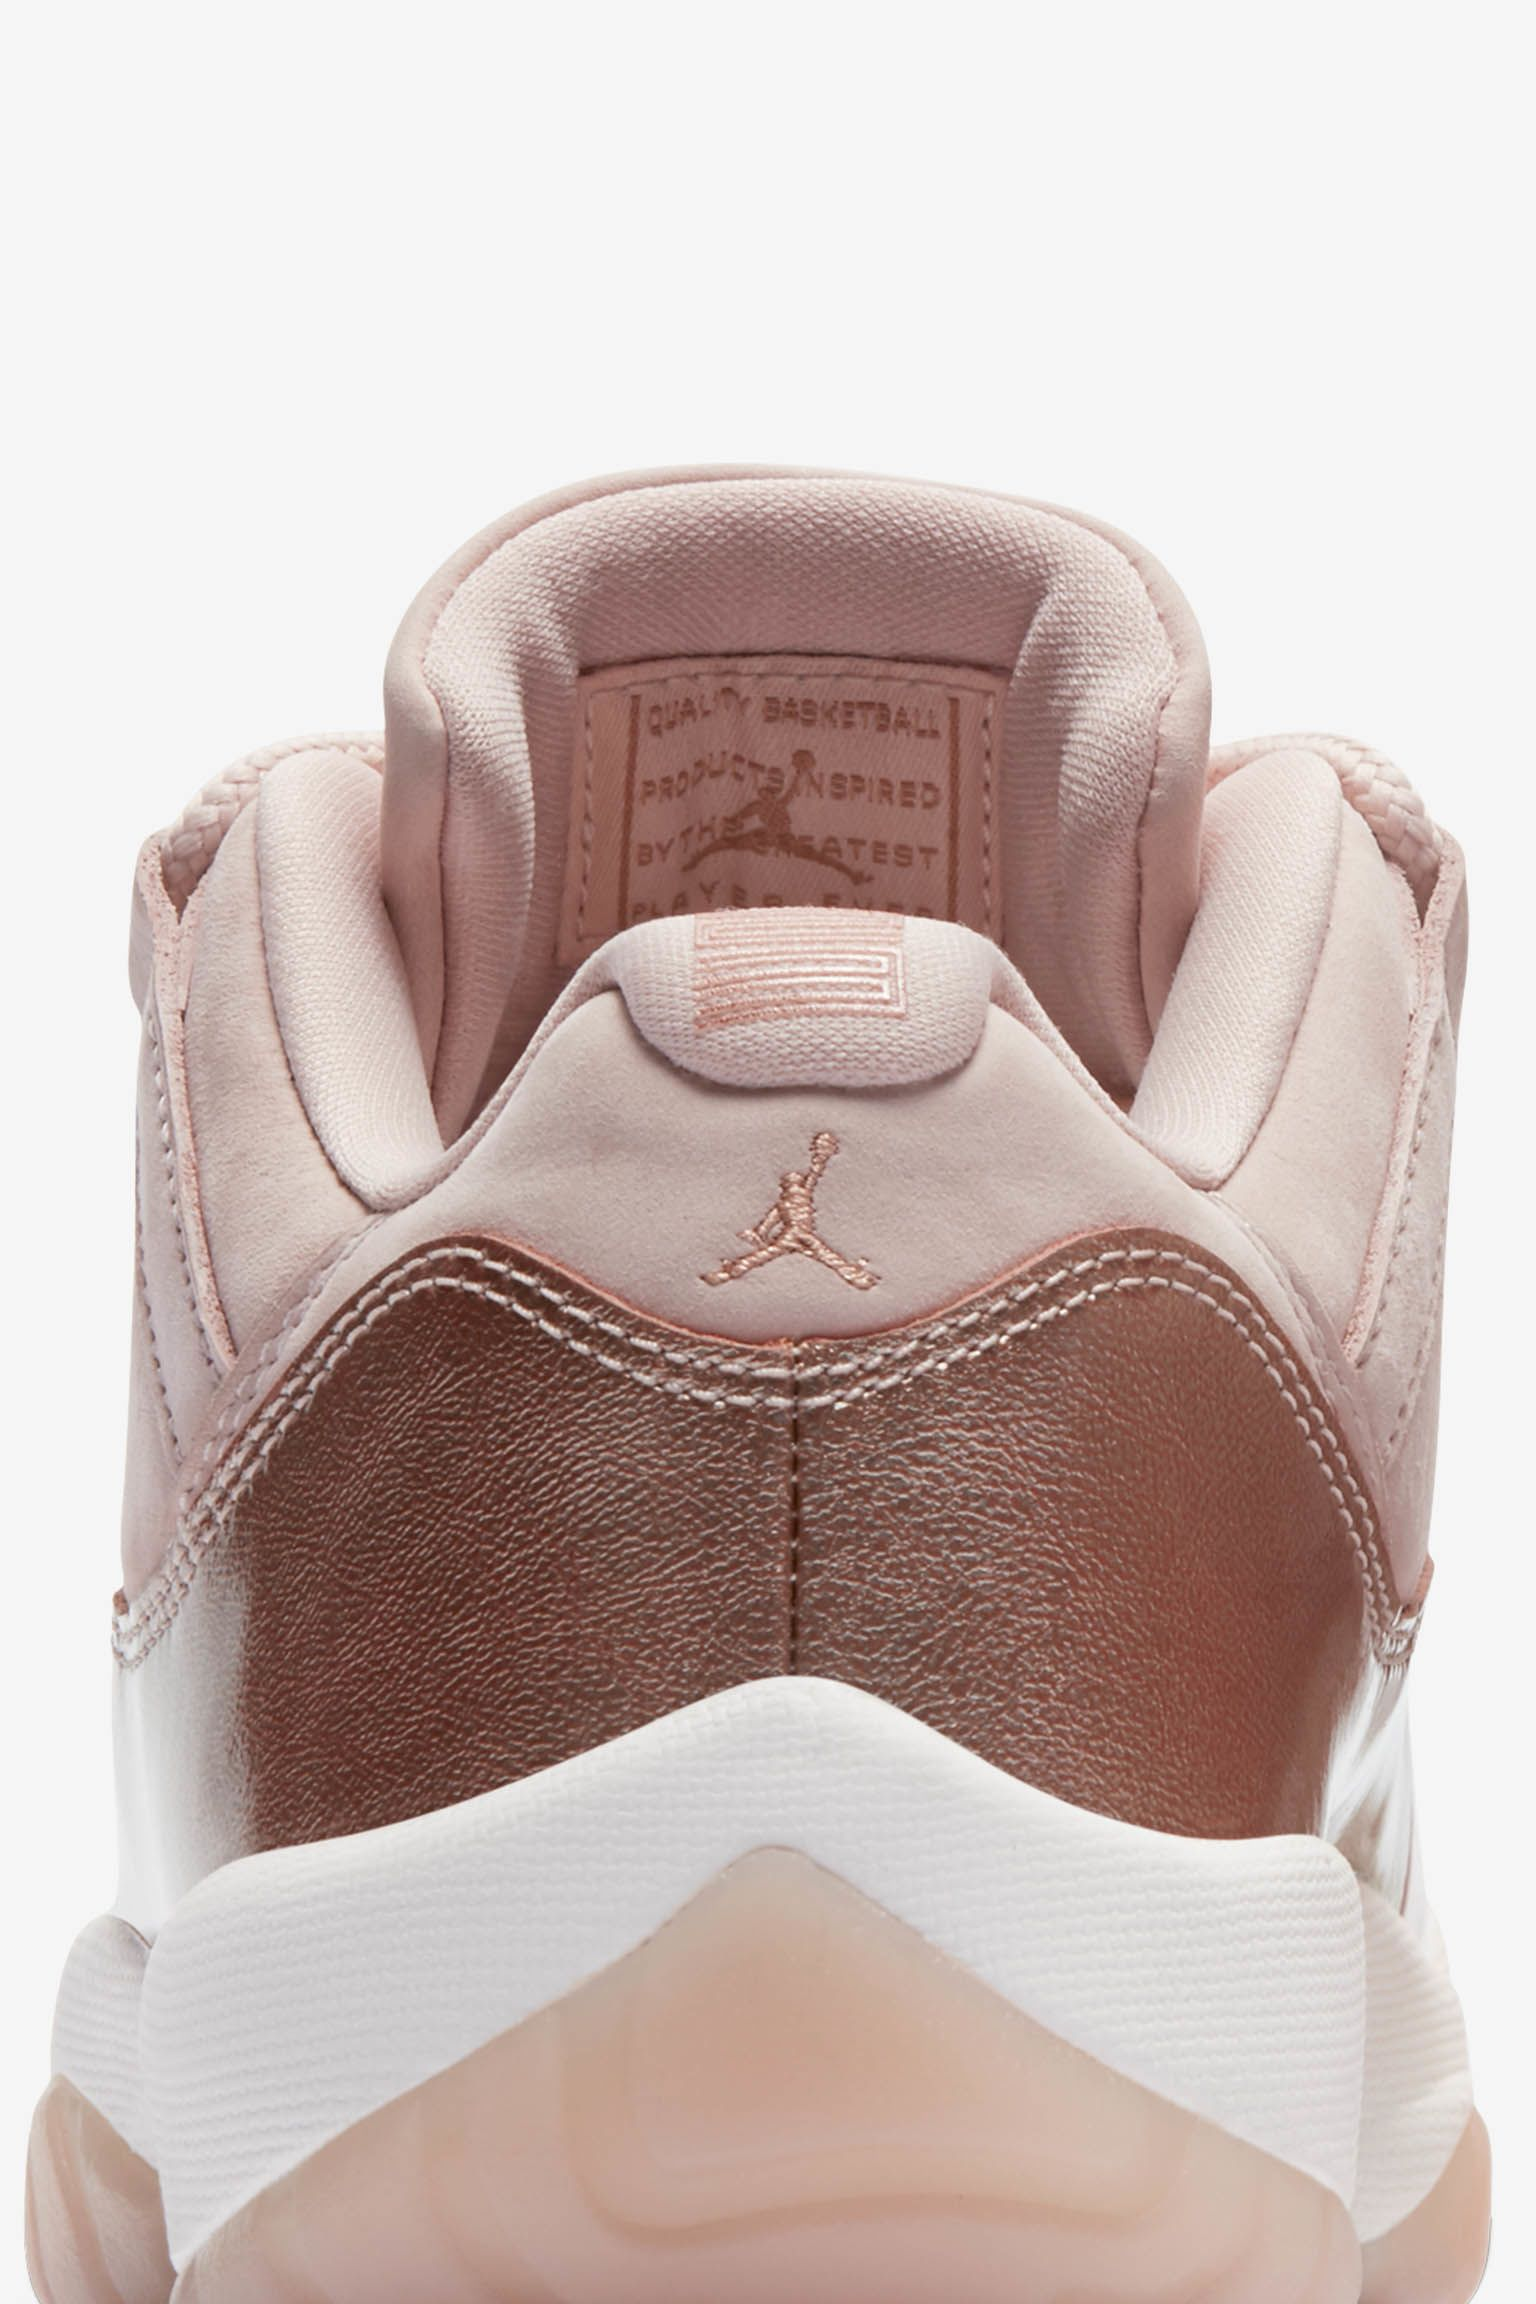 c4929fcd56dd The latest Air Jordan XI makes it even more remarkable. It s crafted with  ultra-soft leather